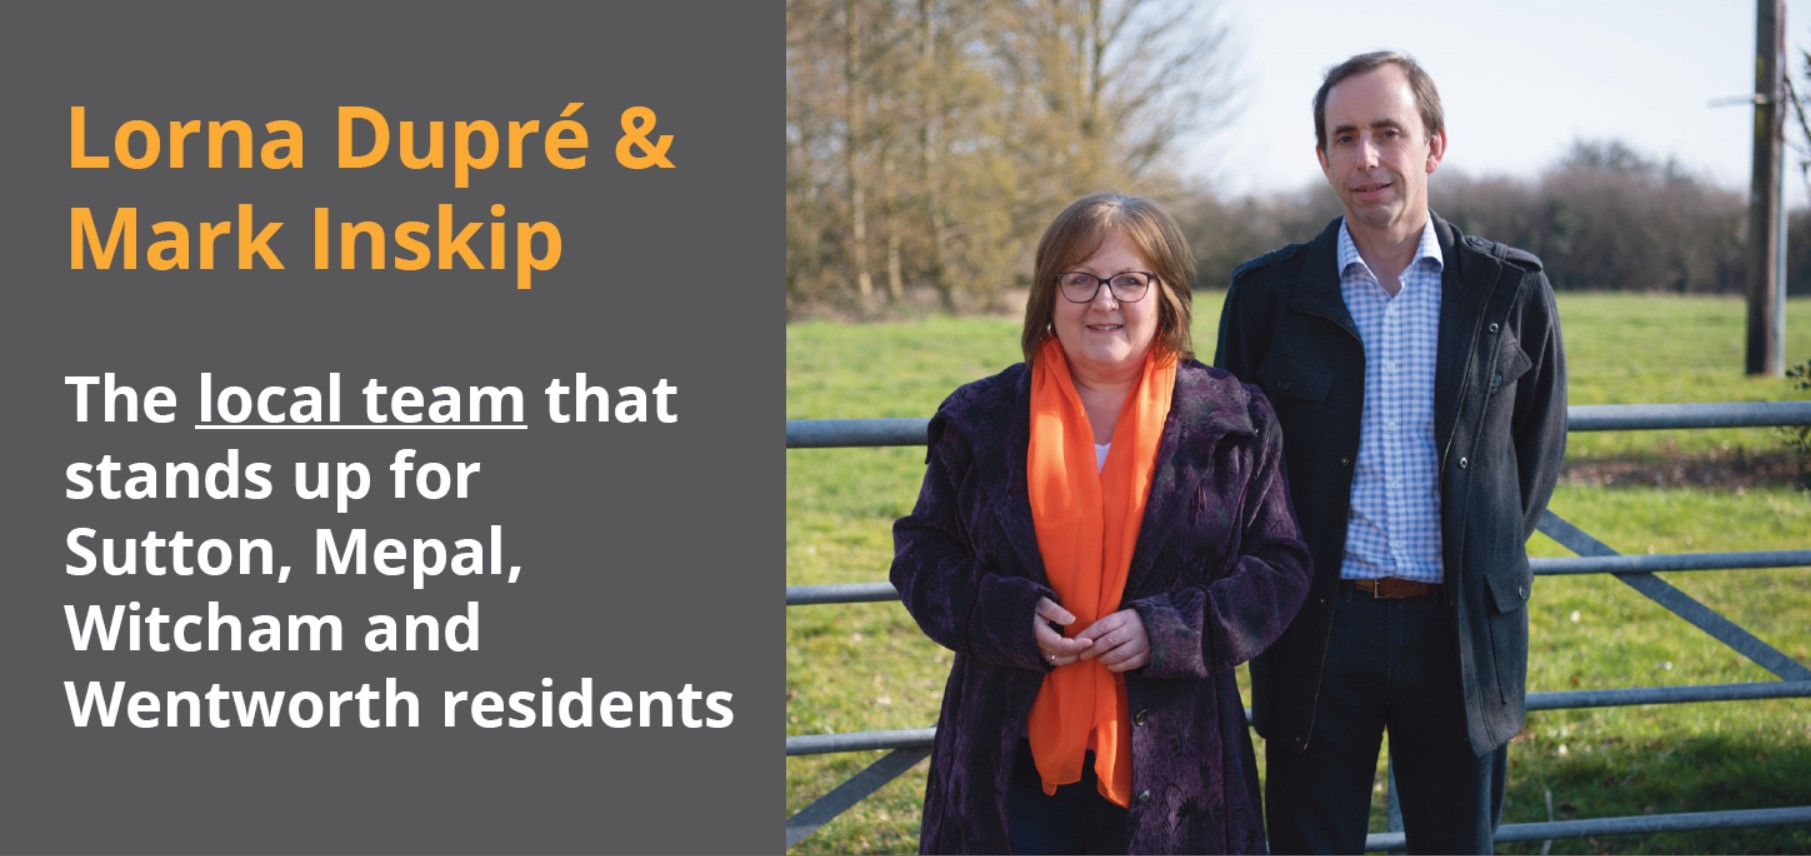 Lorna Dupre and Mark Inskip - Your Lib Dem Candidates for Sutton